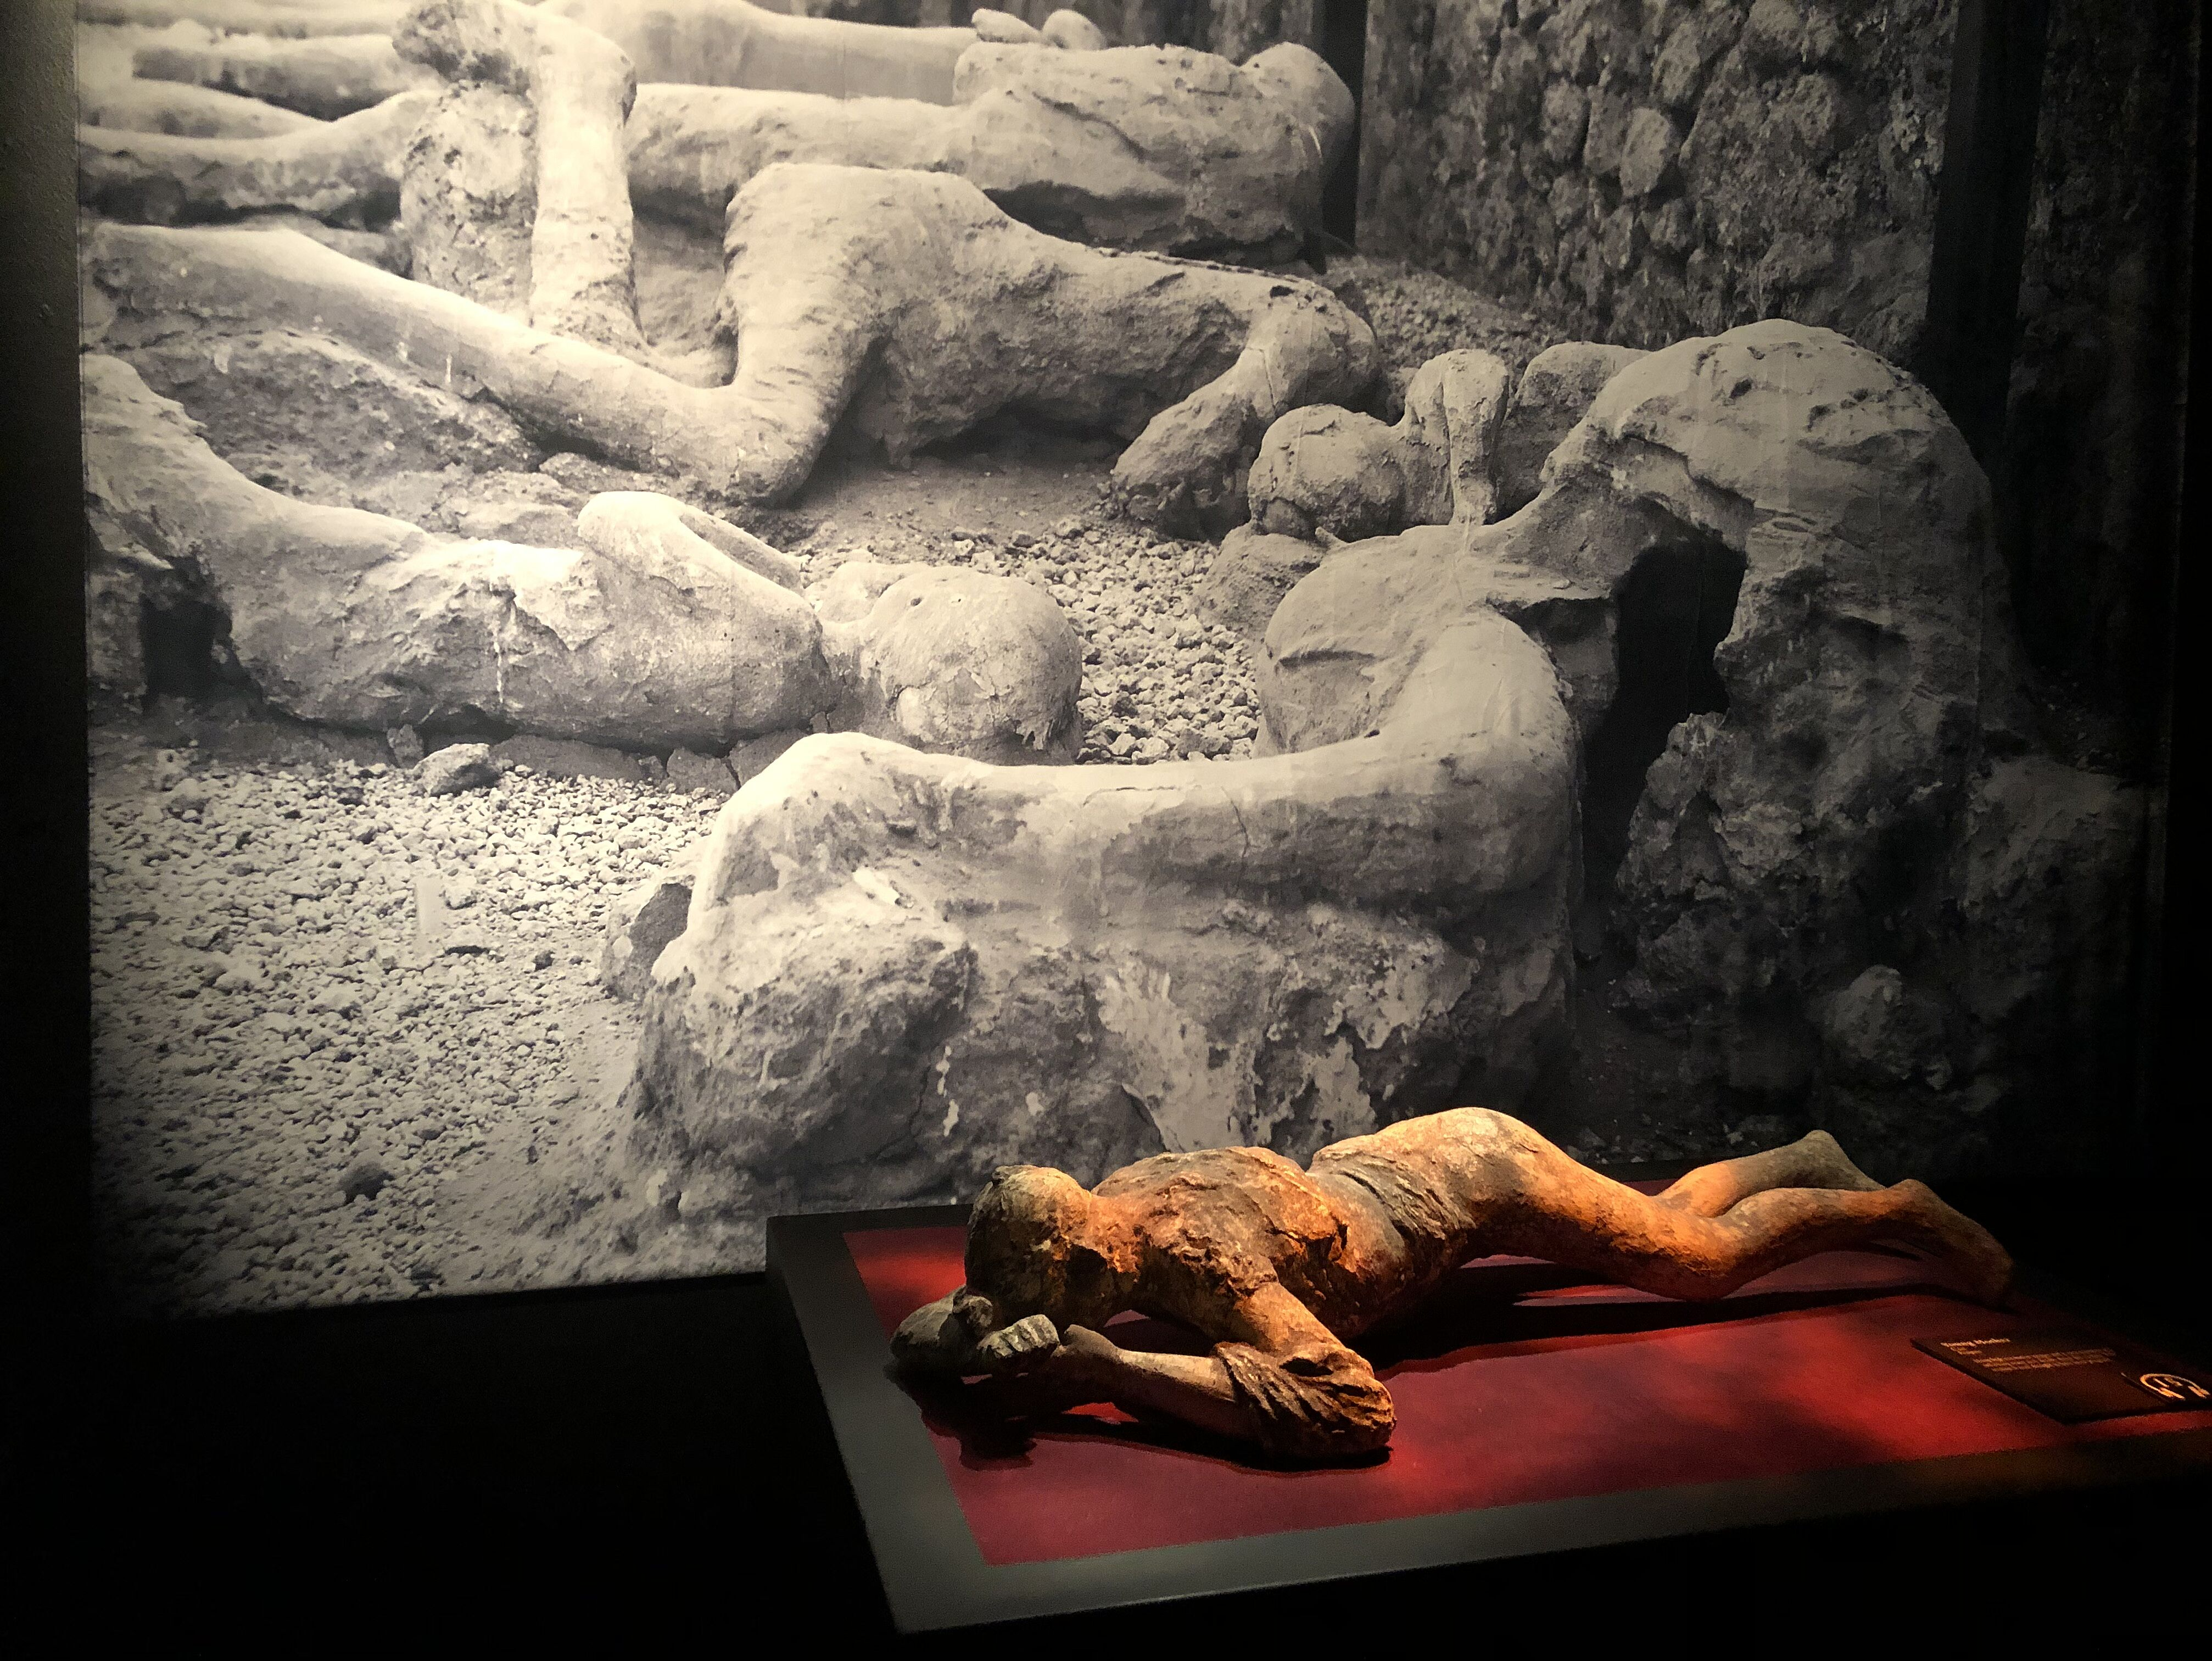 """""""Pompeii: The Exhibition"""" takes us inside the real-life ..."""